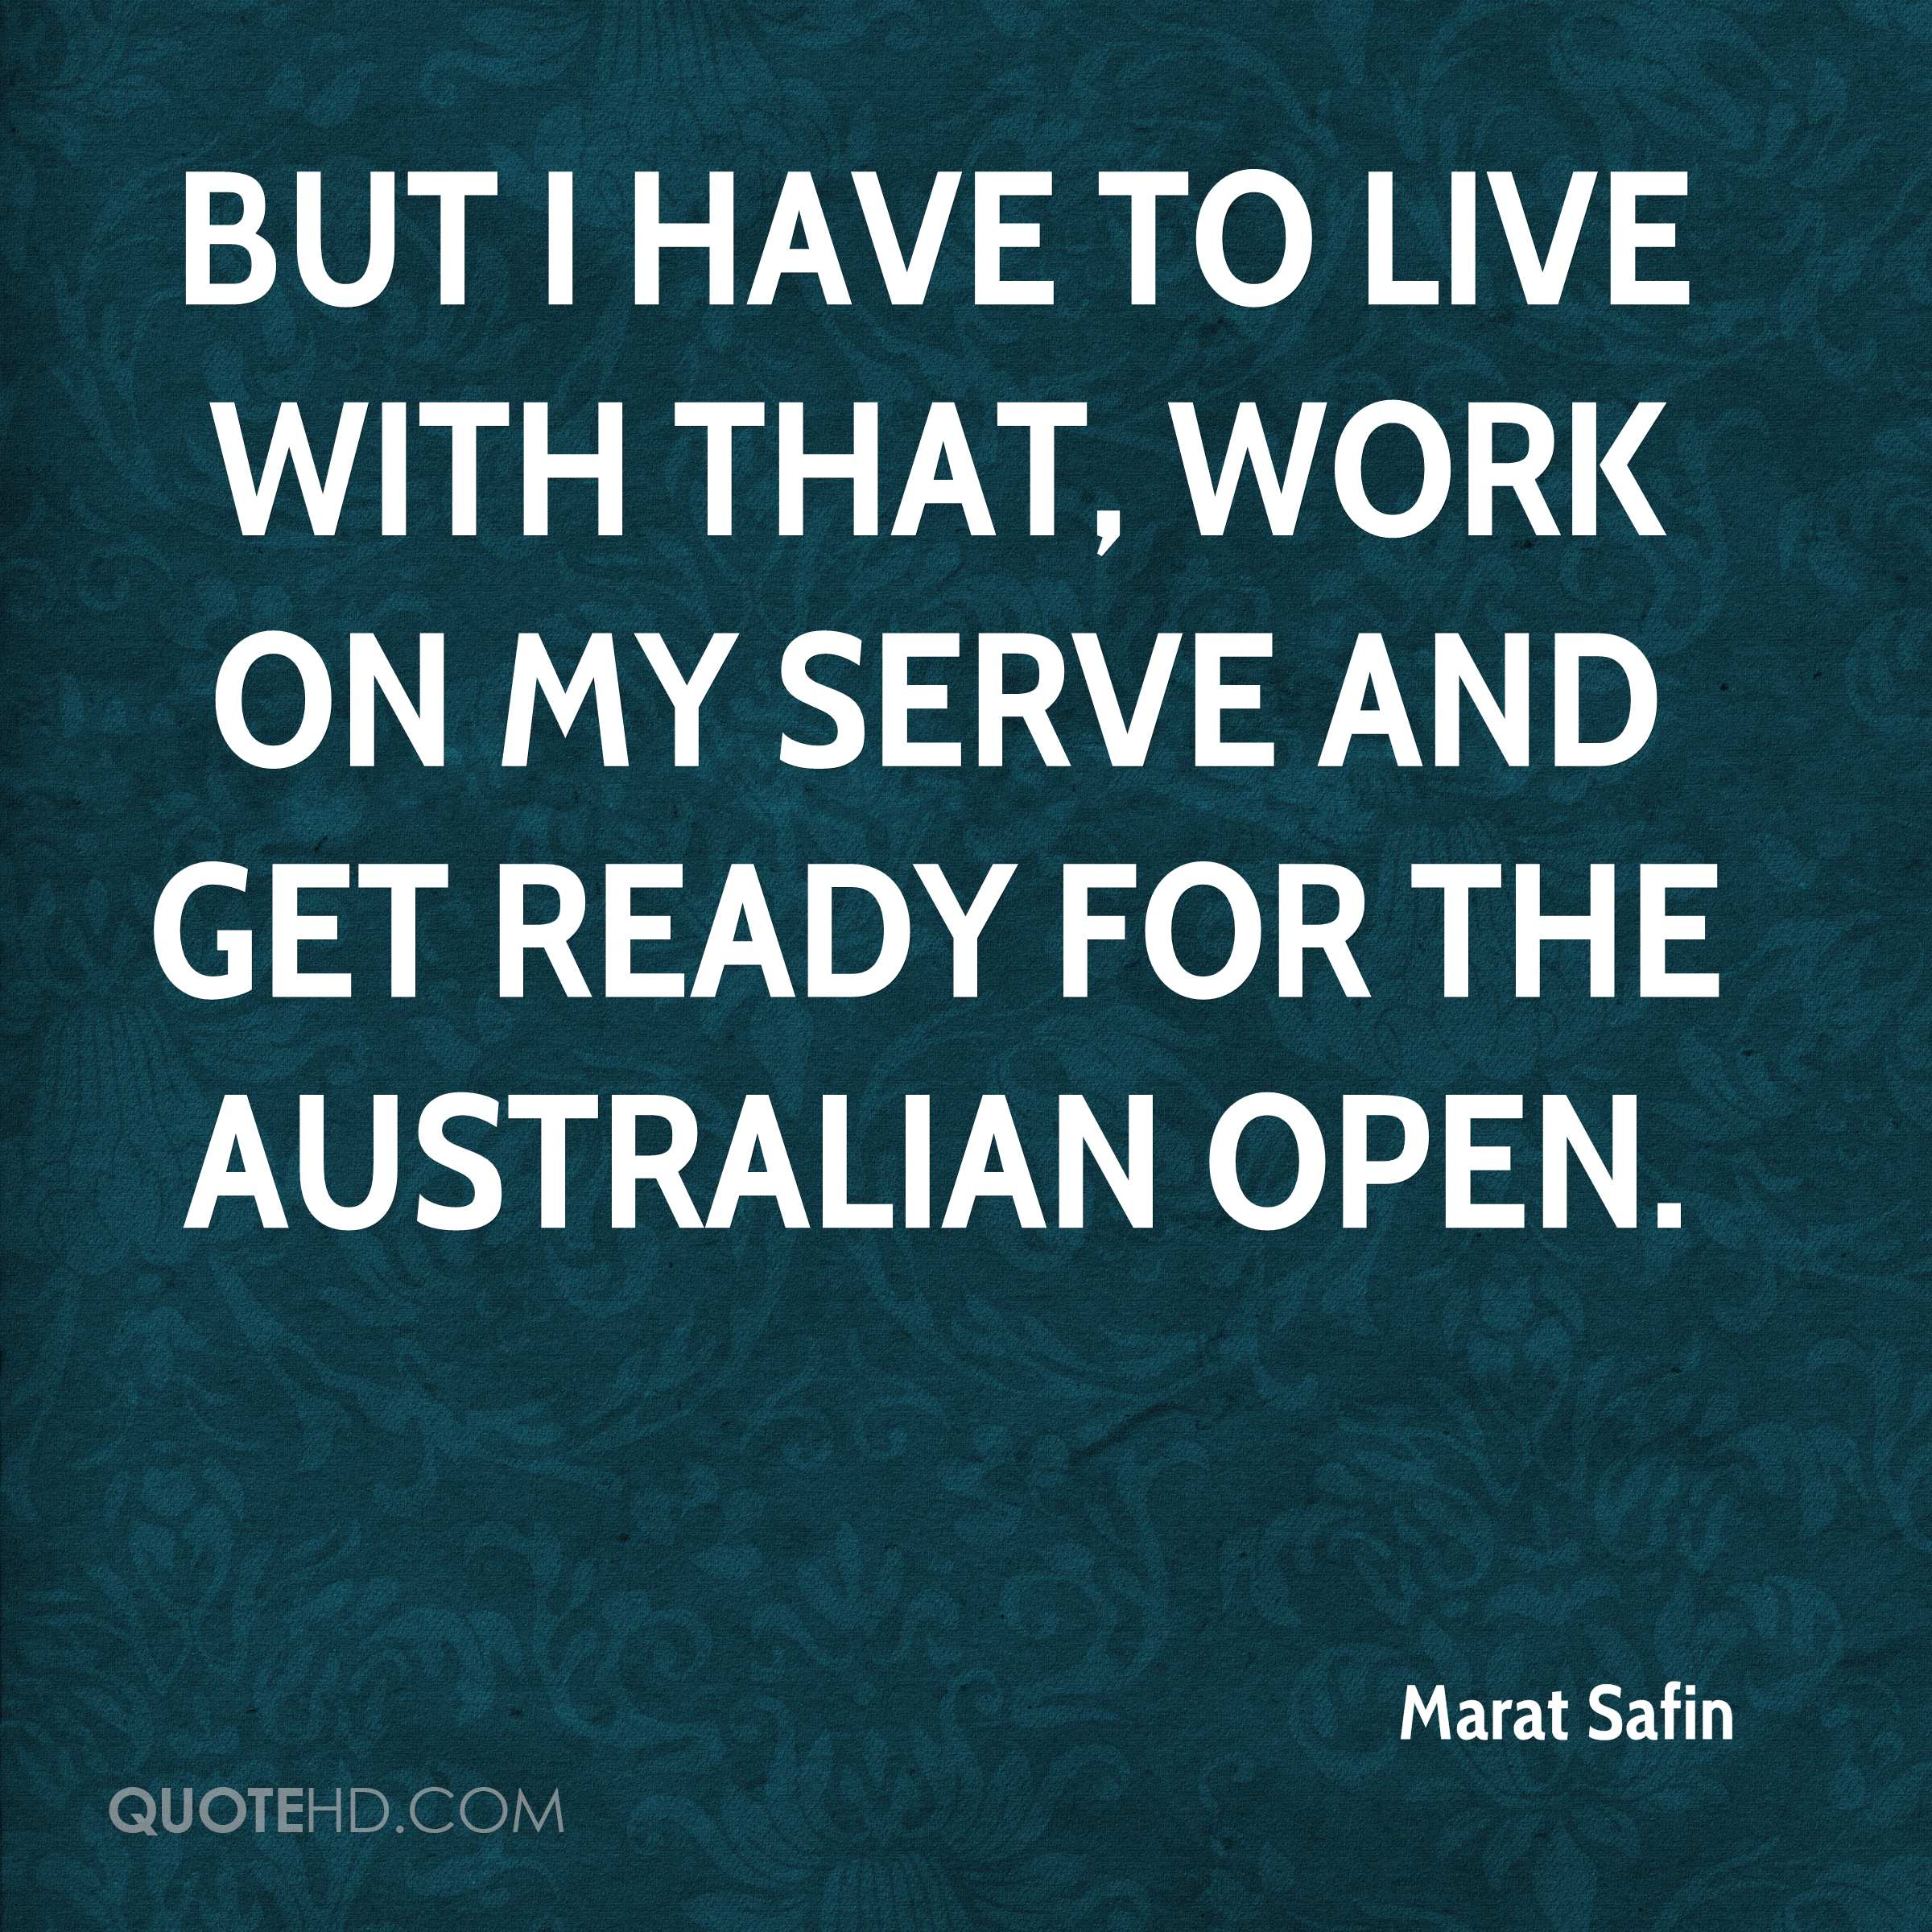 But I have to live with that, work on my serve and get ready for the Australian Open.